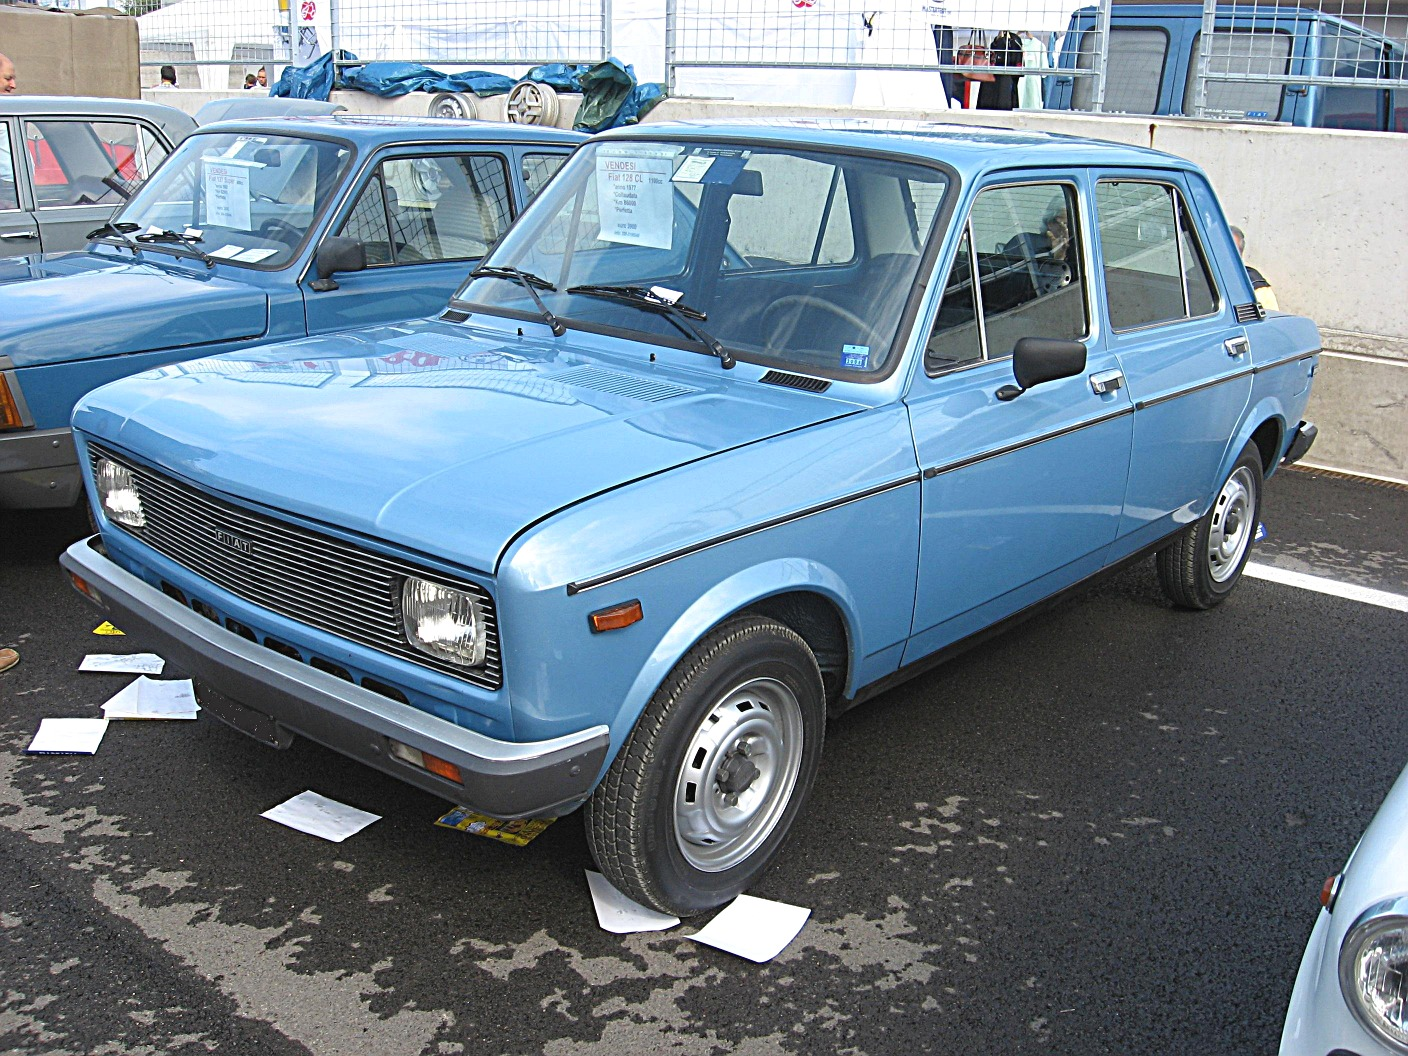 1973 Fiat 128 Sedan Wiring Opinions About Diagram 1975 Color Schematic Trusted Diagrams Rh Kroud Co 6 Panel